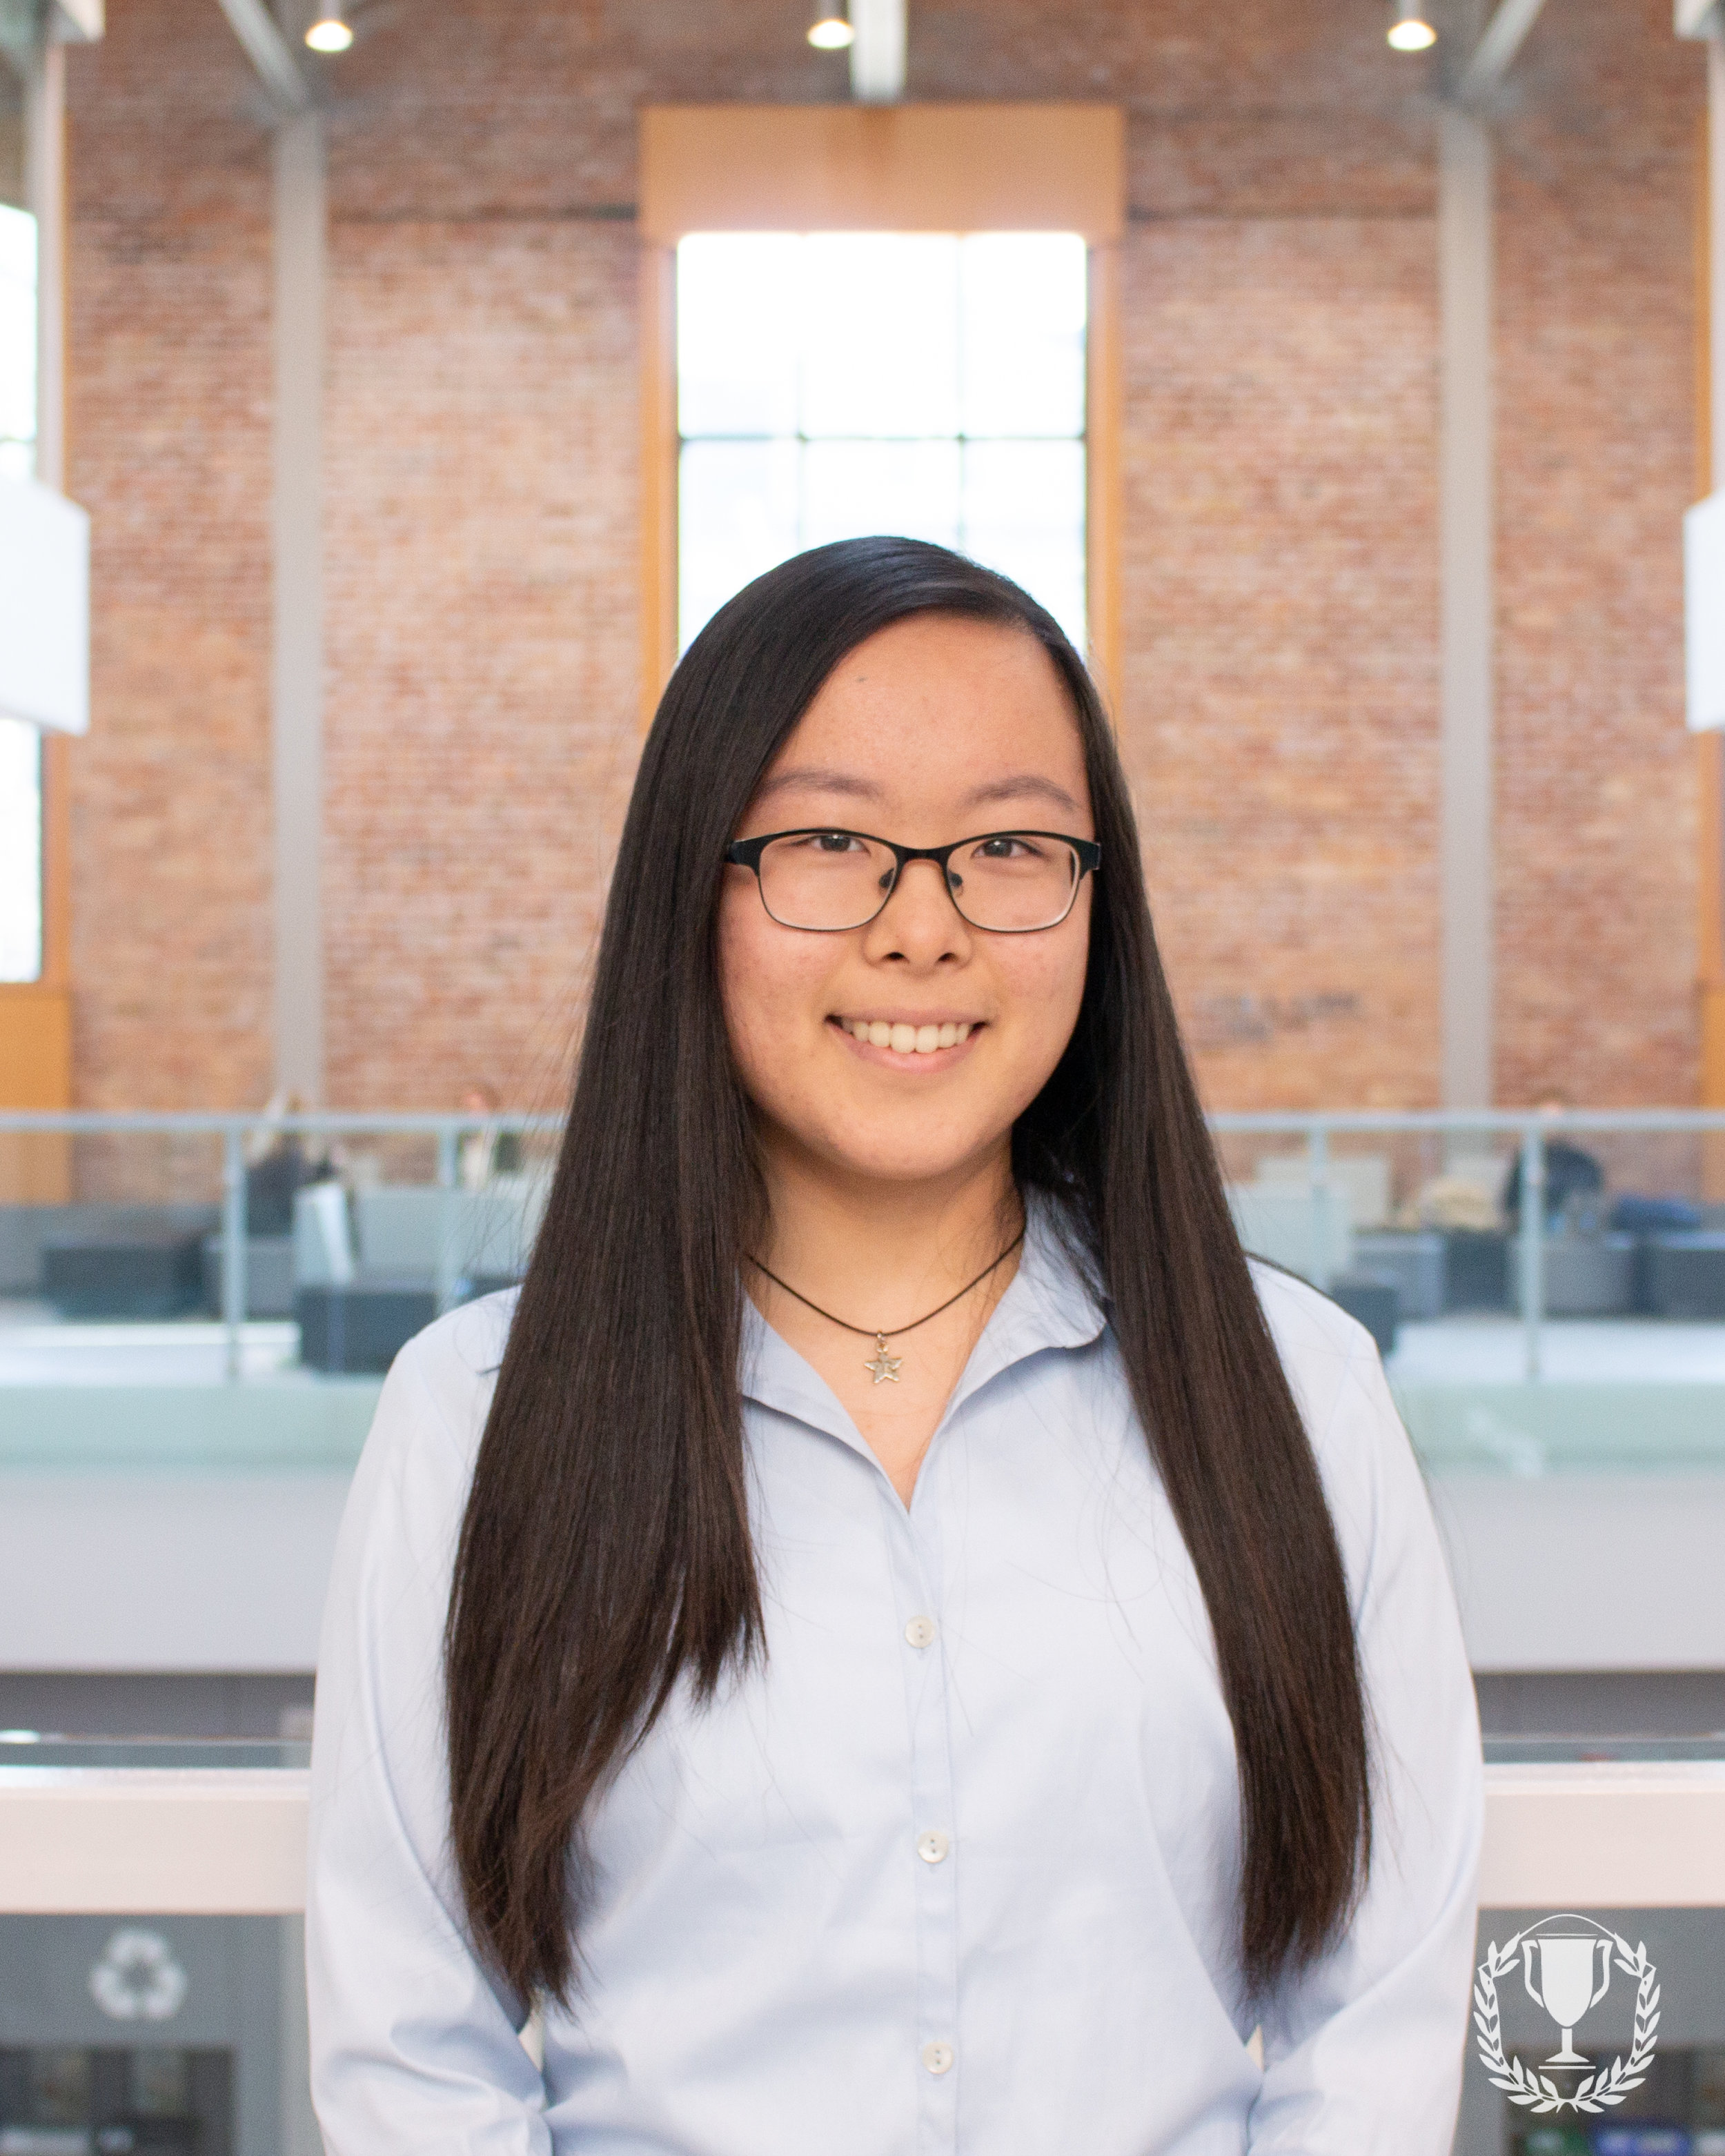 Jennifer Dong - Sponsorship Coordinator   Jennifer is ecstatic to be on the Sponsorship Team, working with such a dedicated and brilliant group of individuals. She is eager to maintain and build partnerships with sponsors, bringing more value to I.C.B.C.'s events. Her hobbies include trying to convince herself to visit the ARC, flying planes, and religiously completing Buzzfeed quizzes. You can often find her wandering around Goodes Hall searching for her classes and meeting rooms.